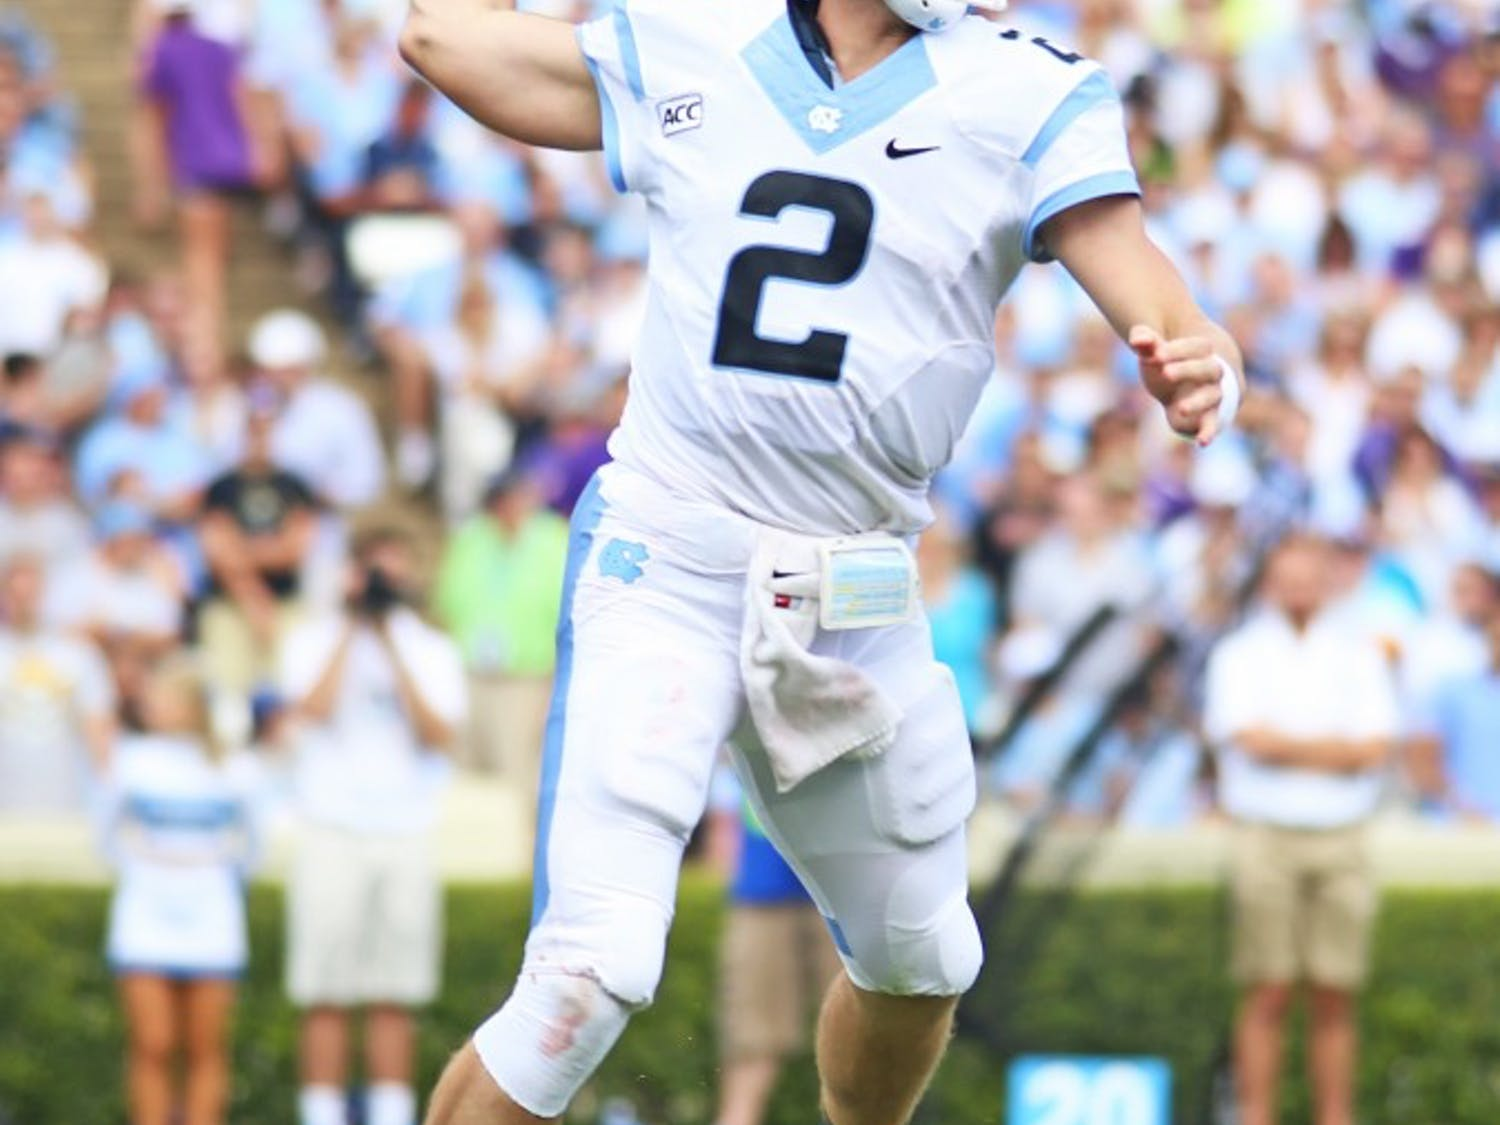 UNC quarterback Bryn Renner (2) threw for a career high 366 yards, and also passed former UNC quarterback T.J. Yates.